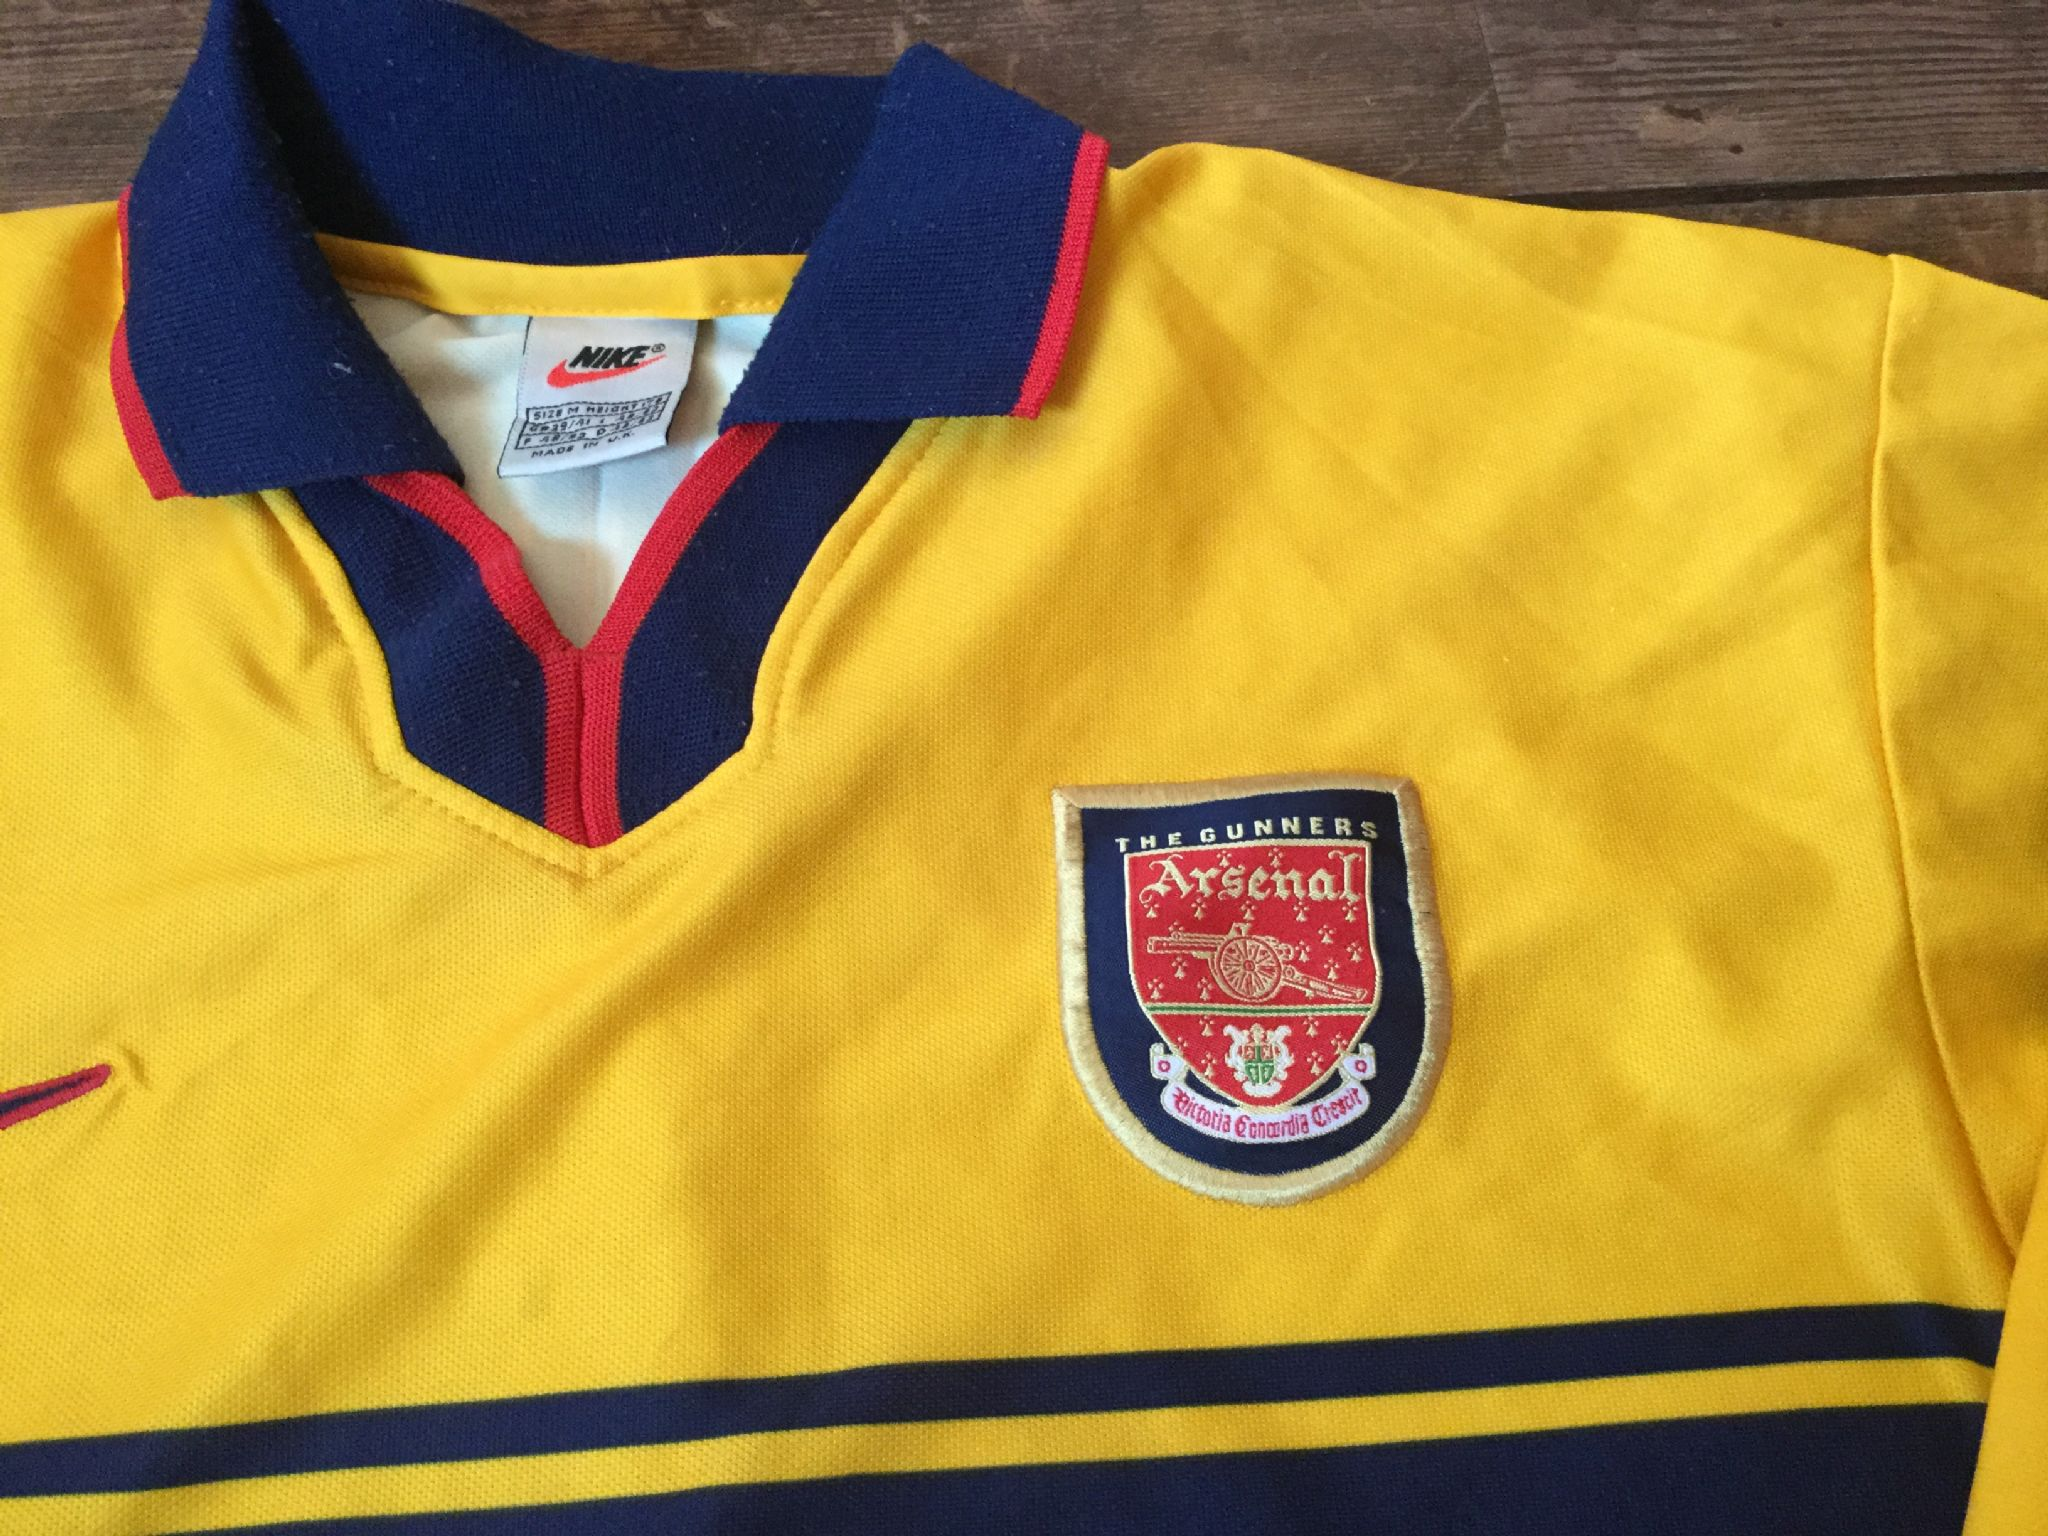 26d589f0d Global Classic Football Shirts   Old Vintage Soccer Jersey 1997 Arsenal